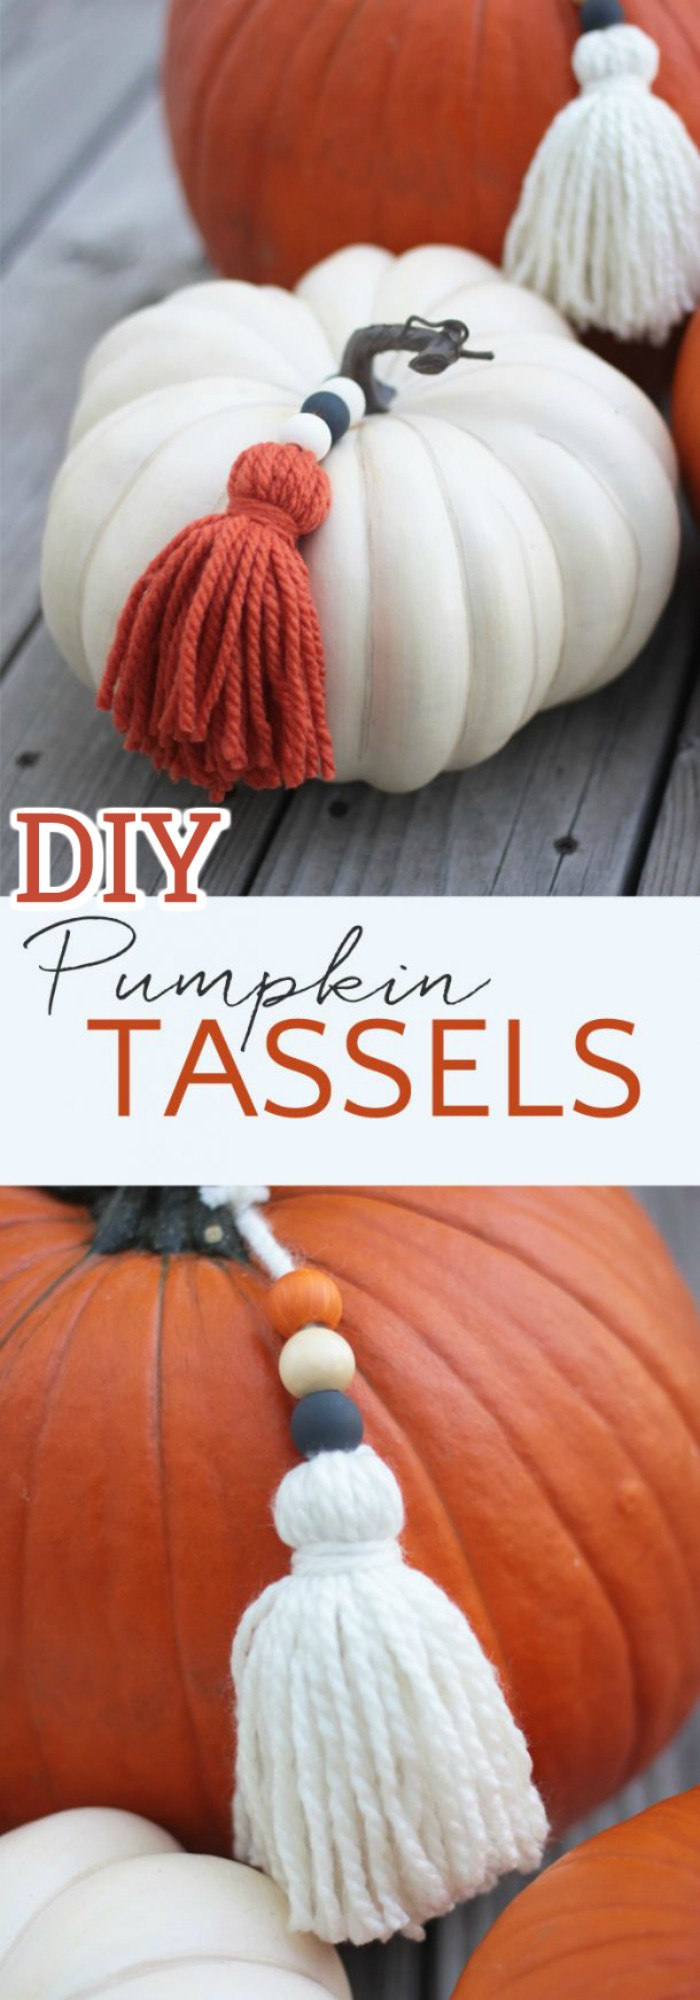 DIY Pumpkin Yarn Tassels